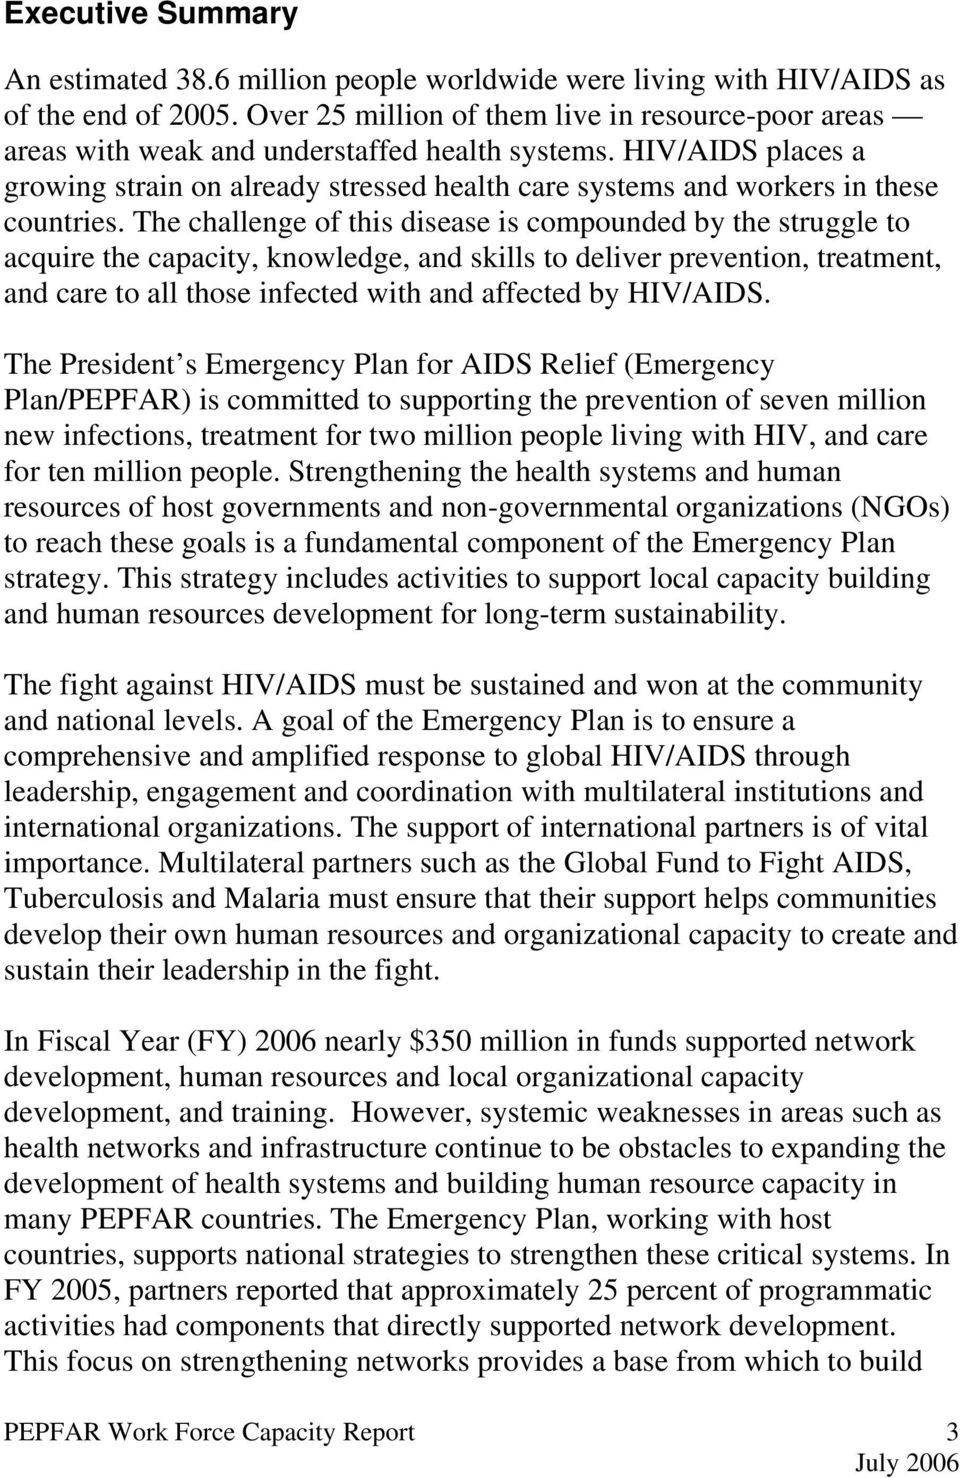 HIV/AIDS places a growing strain on already stressed health care systems and workers in these countries.